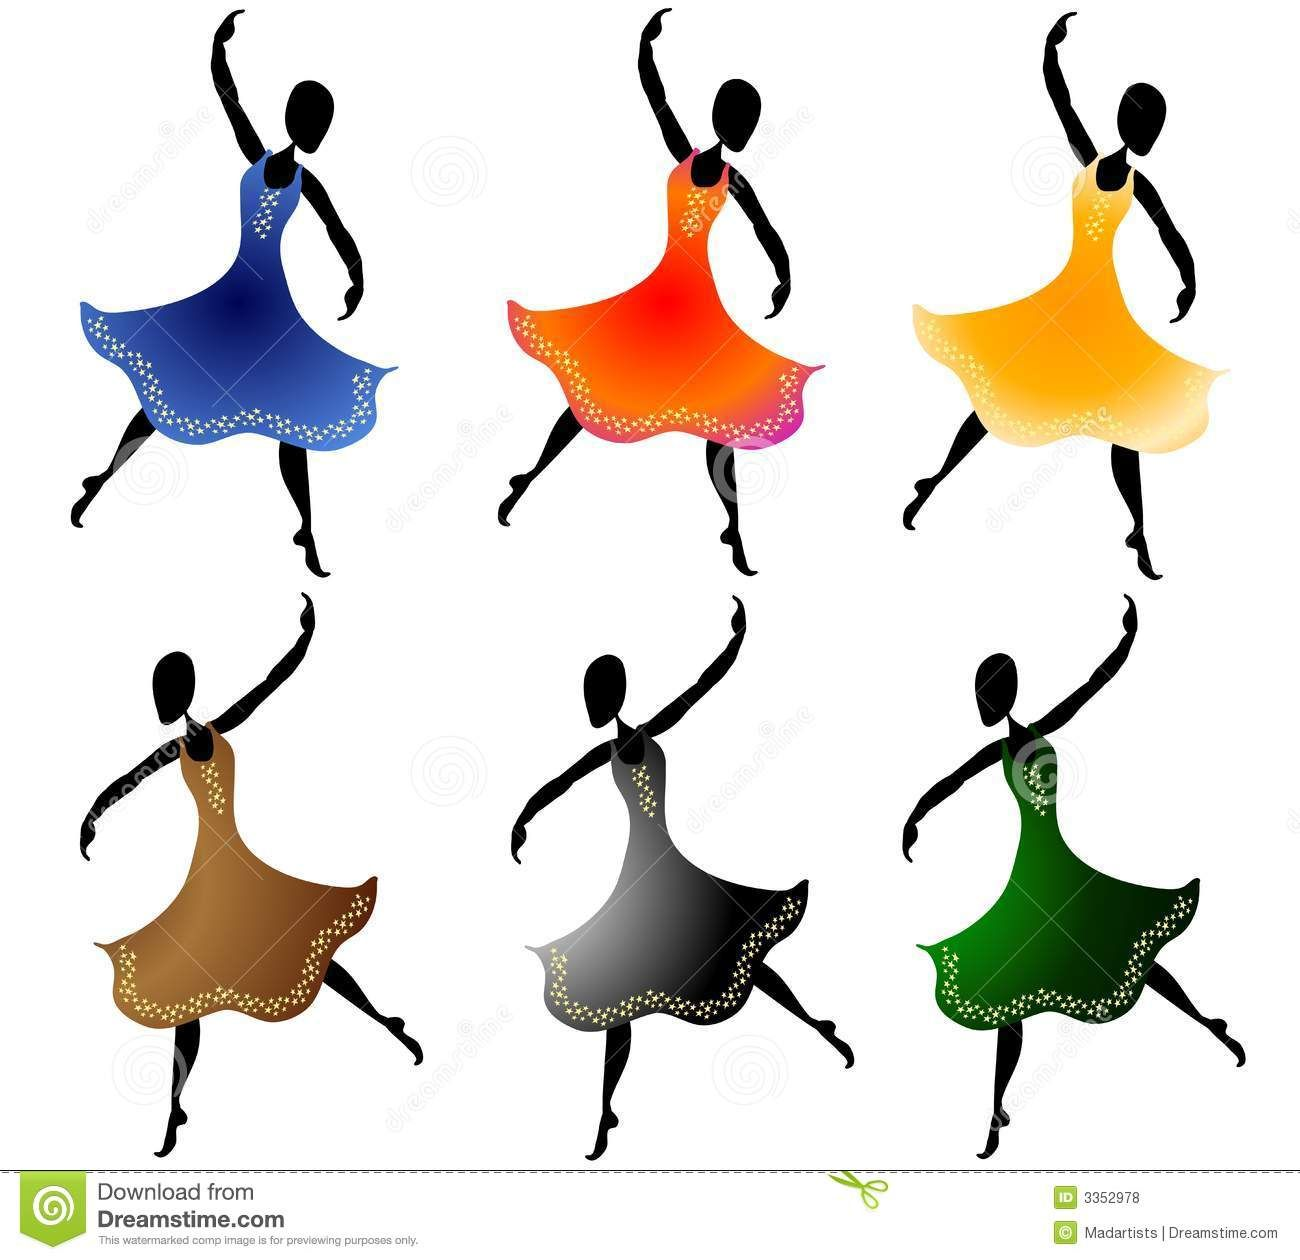 woman dancing clip art clipart t nc pinterest clip art rh pinterest com Mexican Hat Dance Clip Art Monkey Bars Clip Art